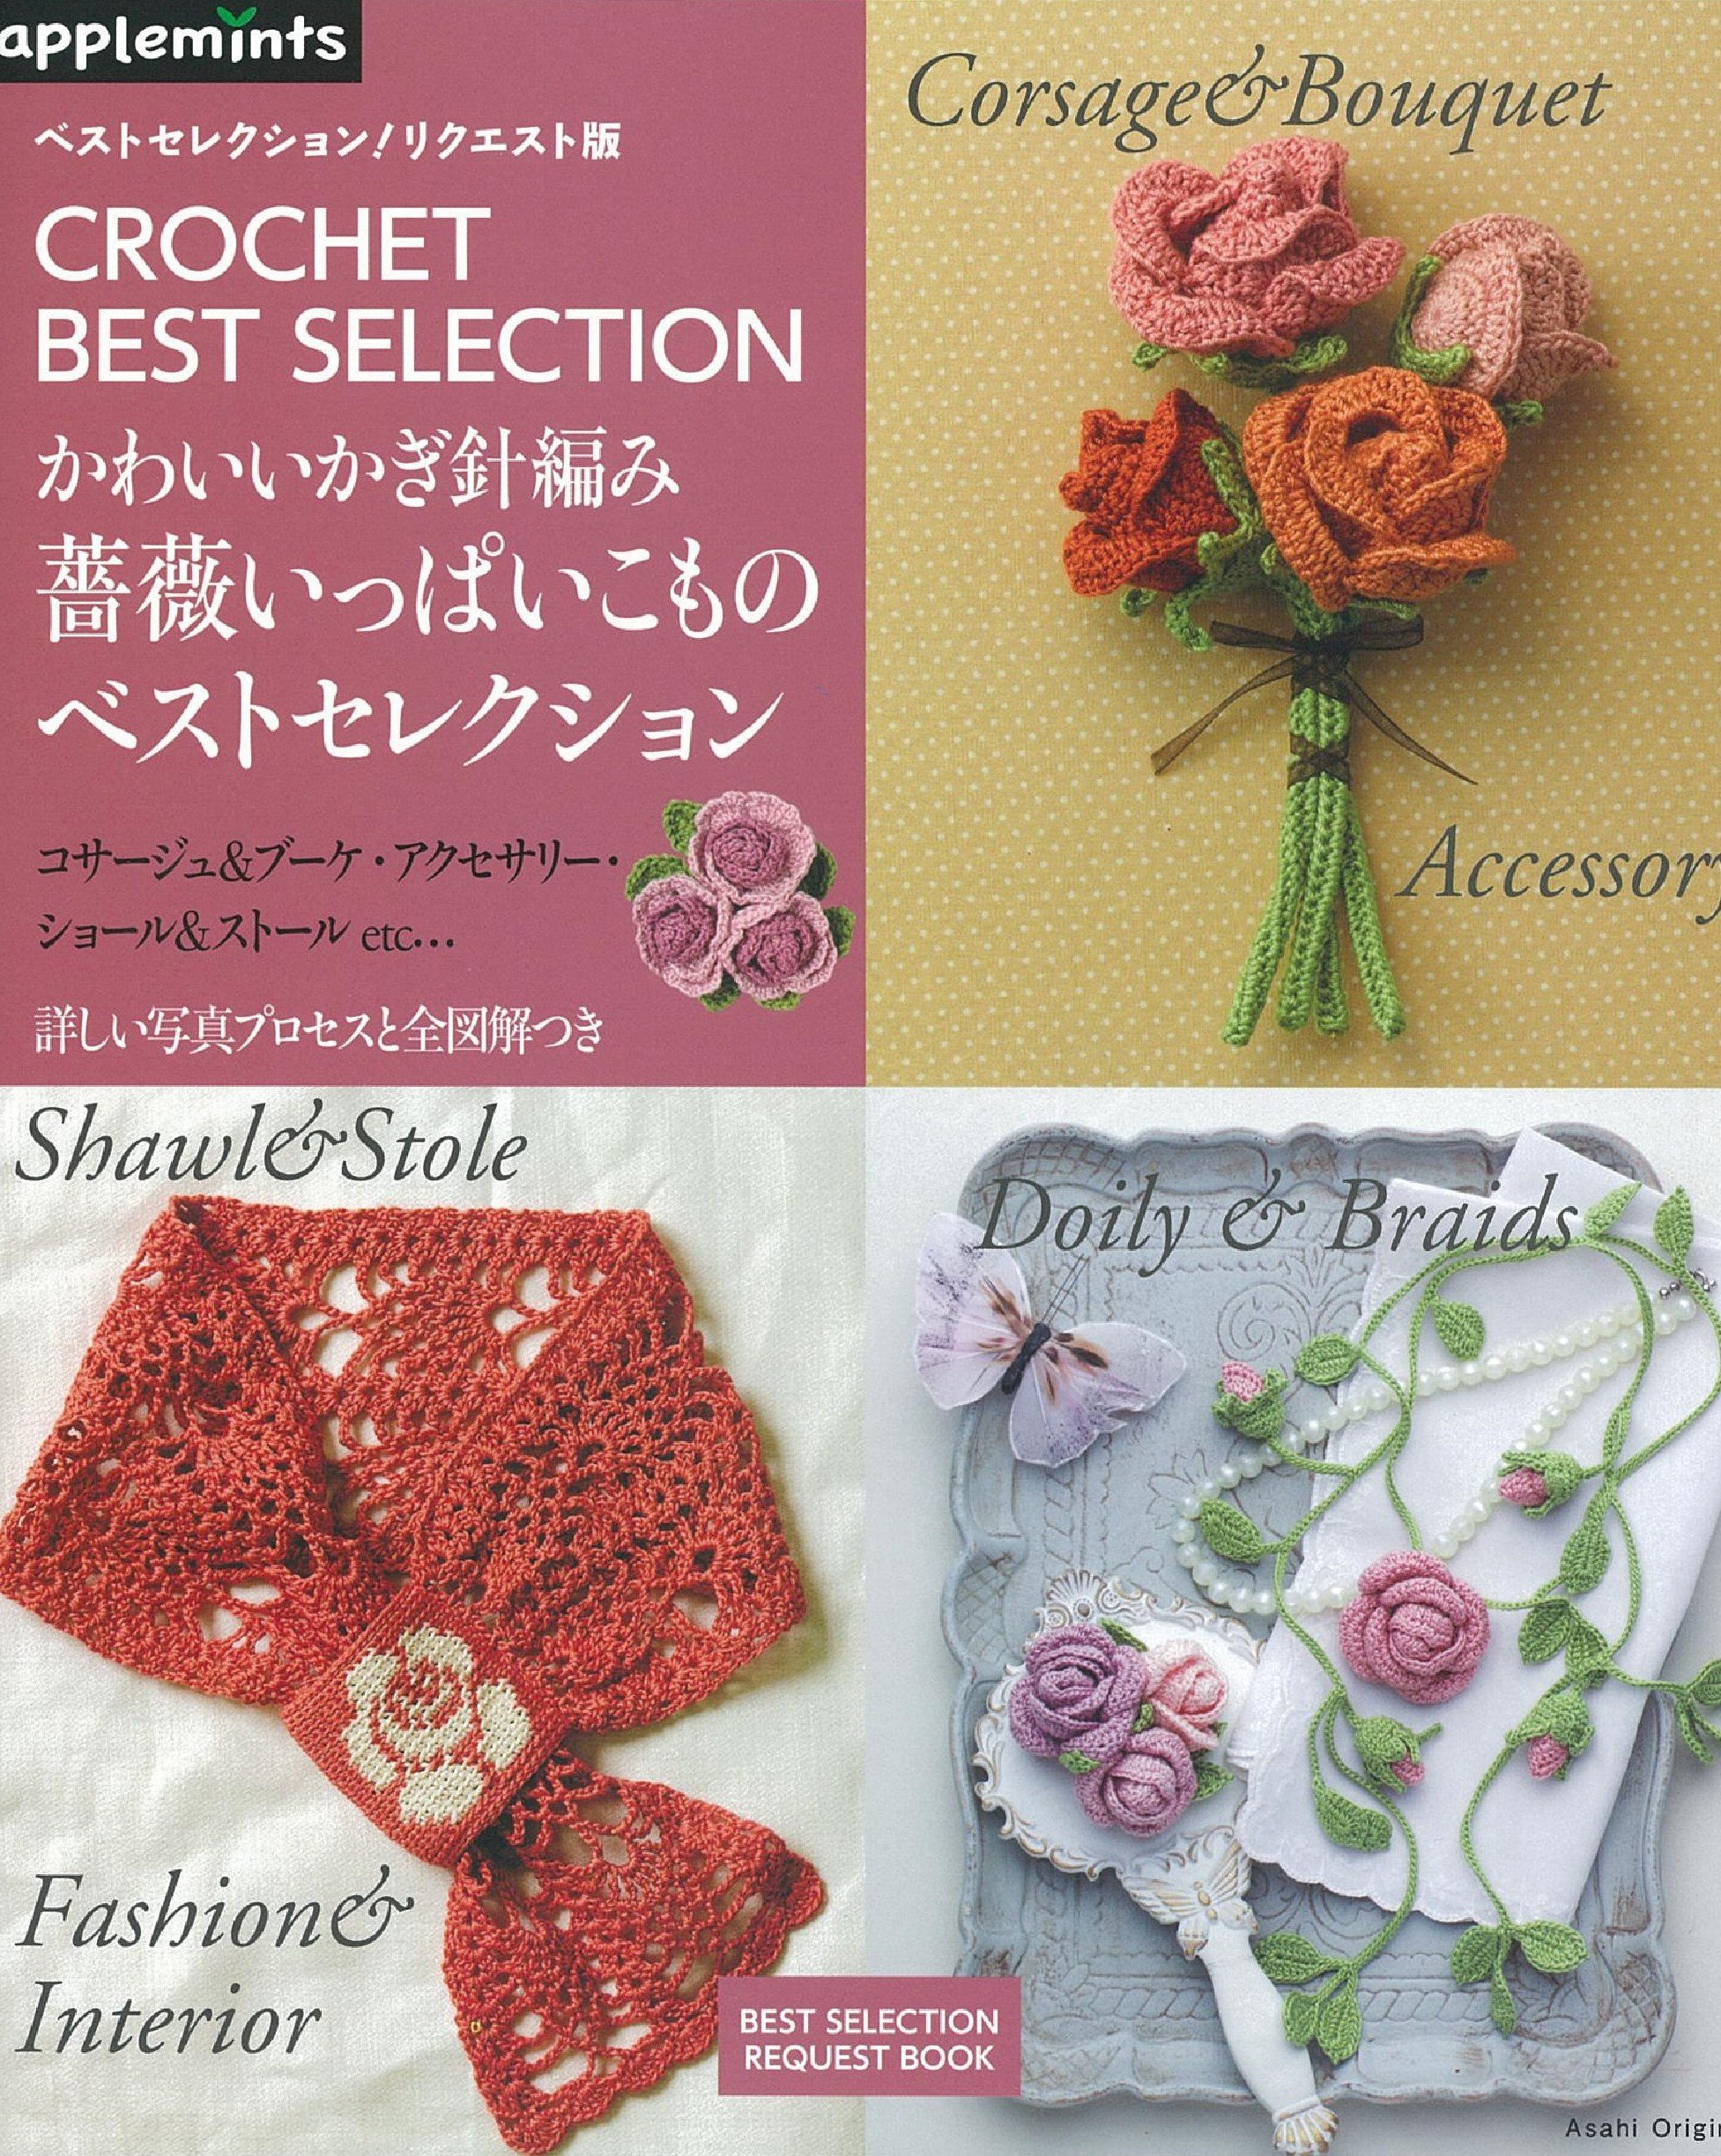 Best Selection request version cute crochet rose full accessories